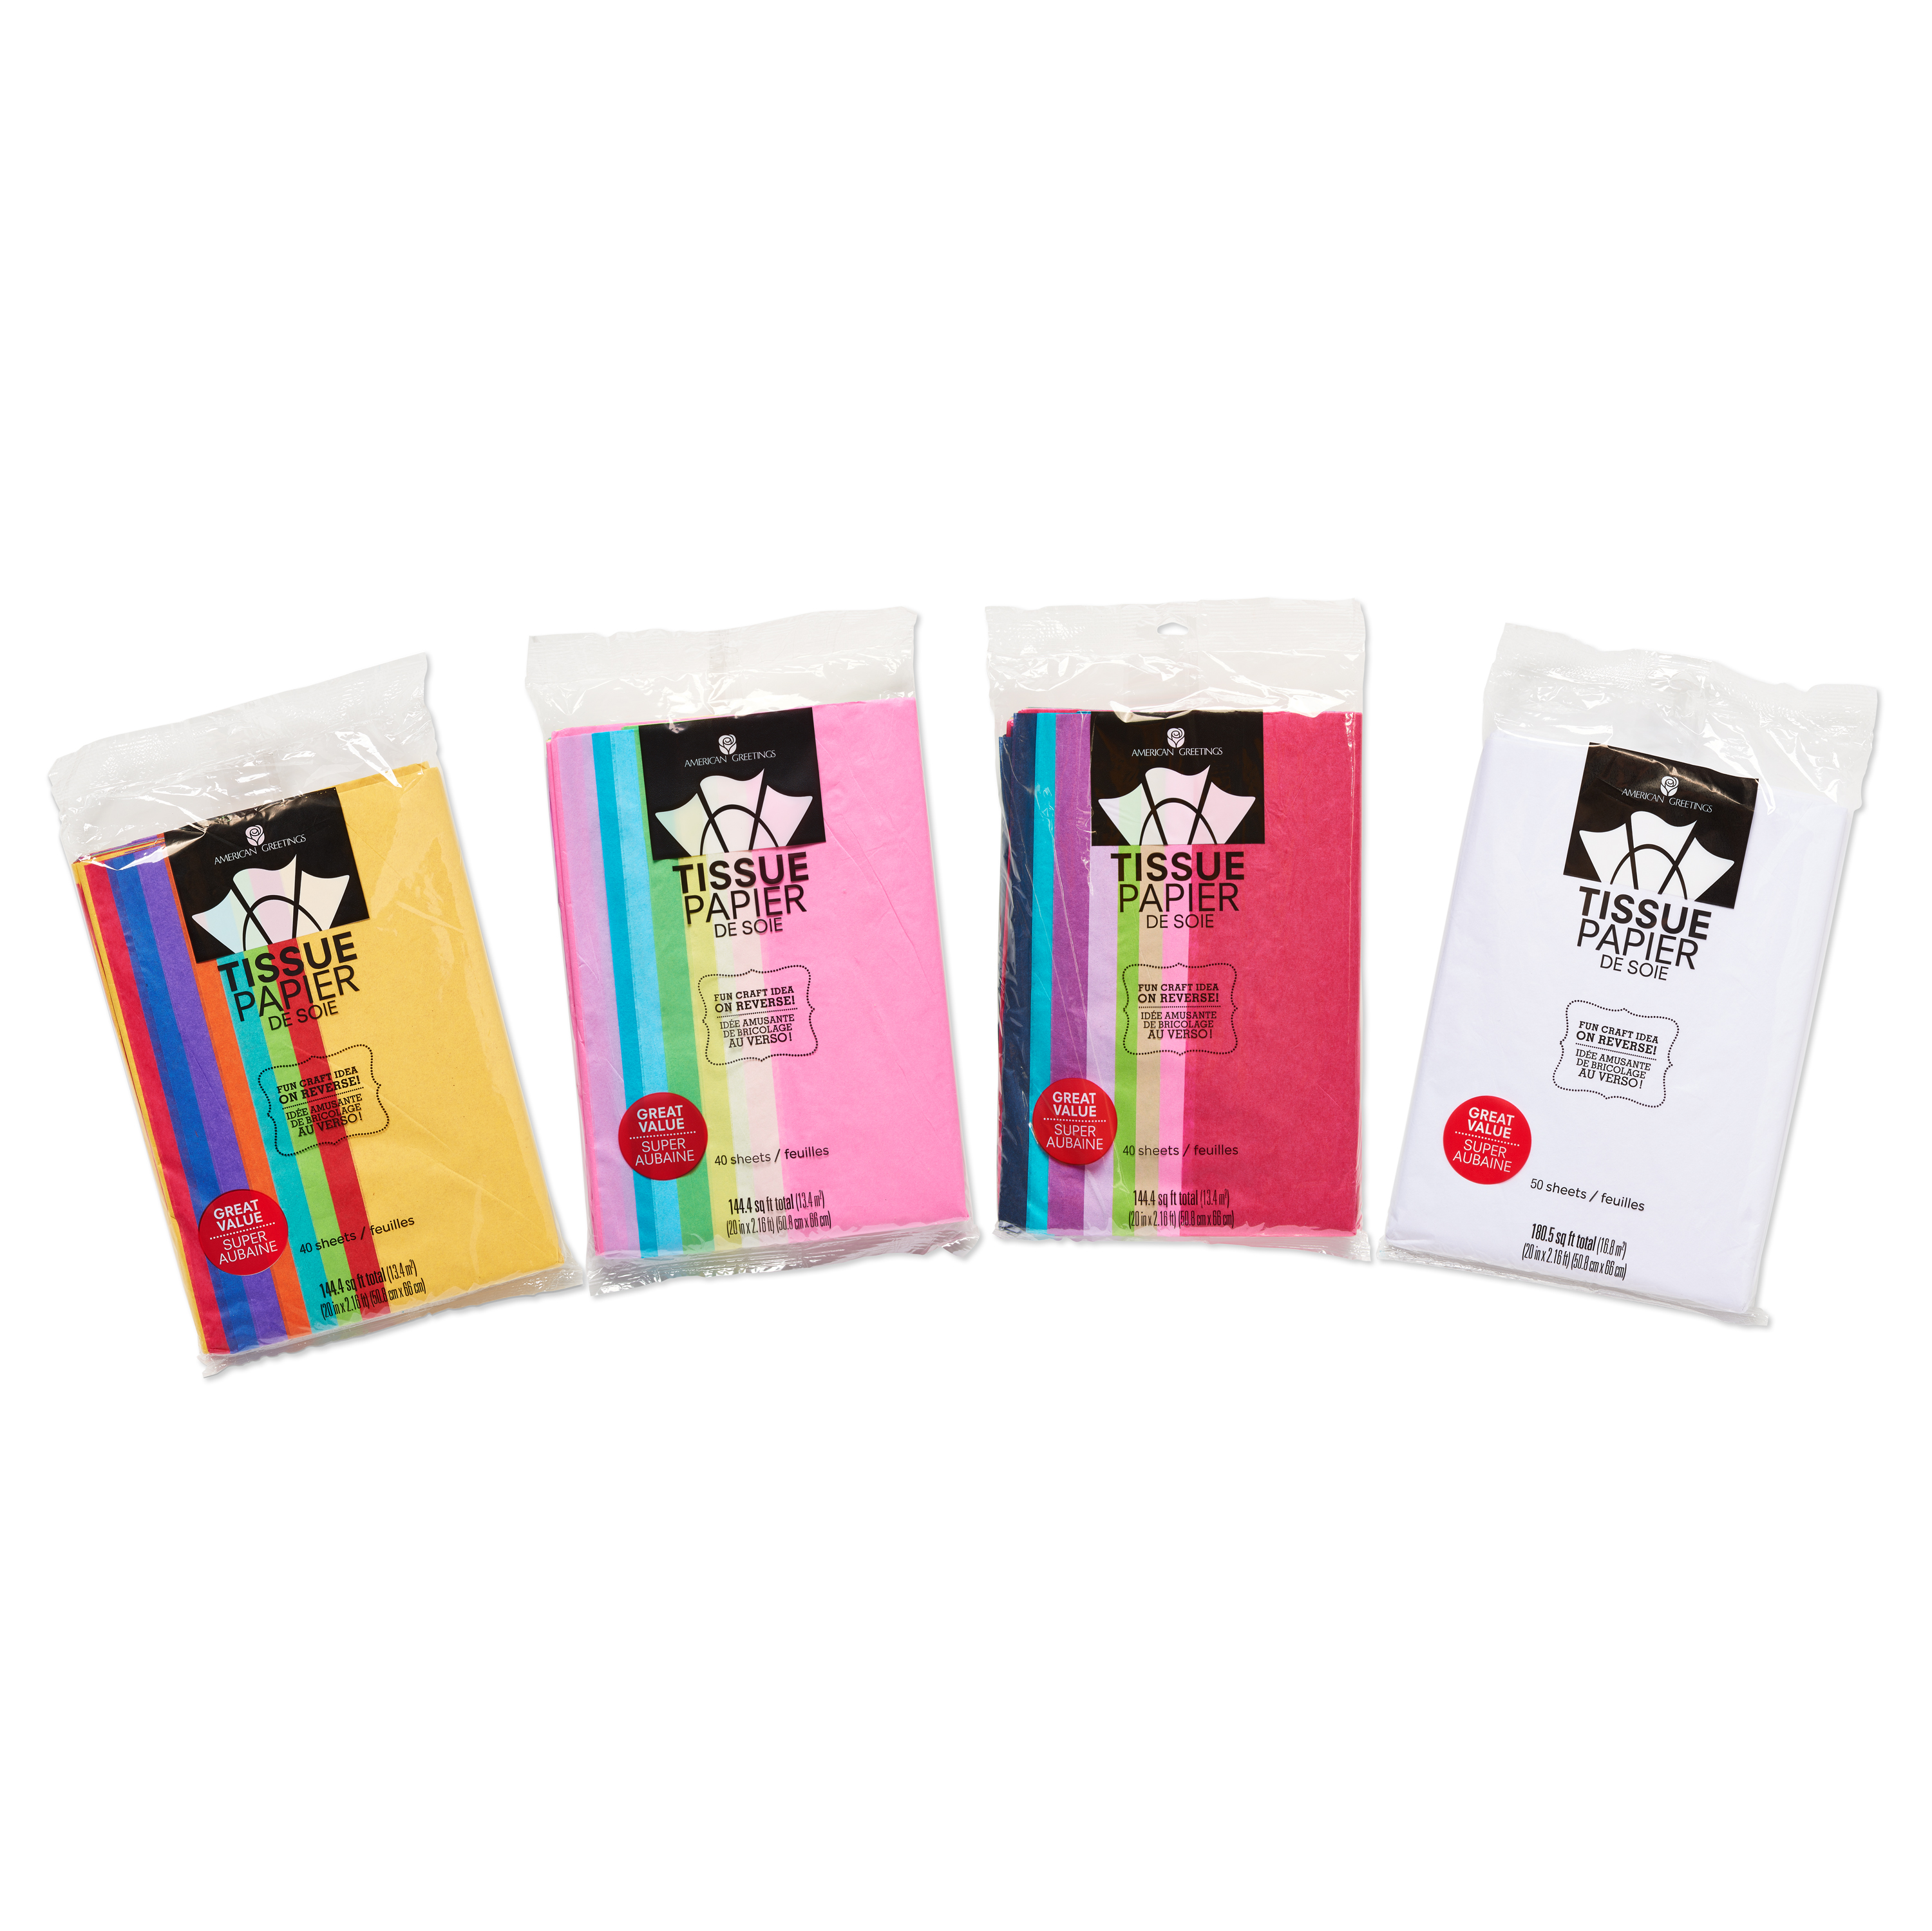 American Greetings Multicolored Tissue Paper Value Bundle, 170 Sheets